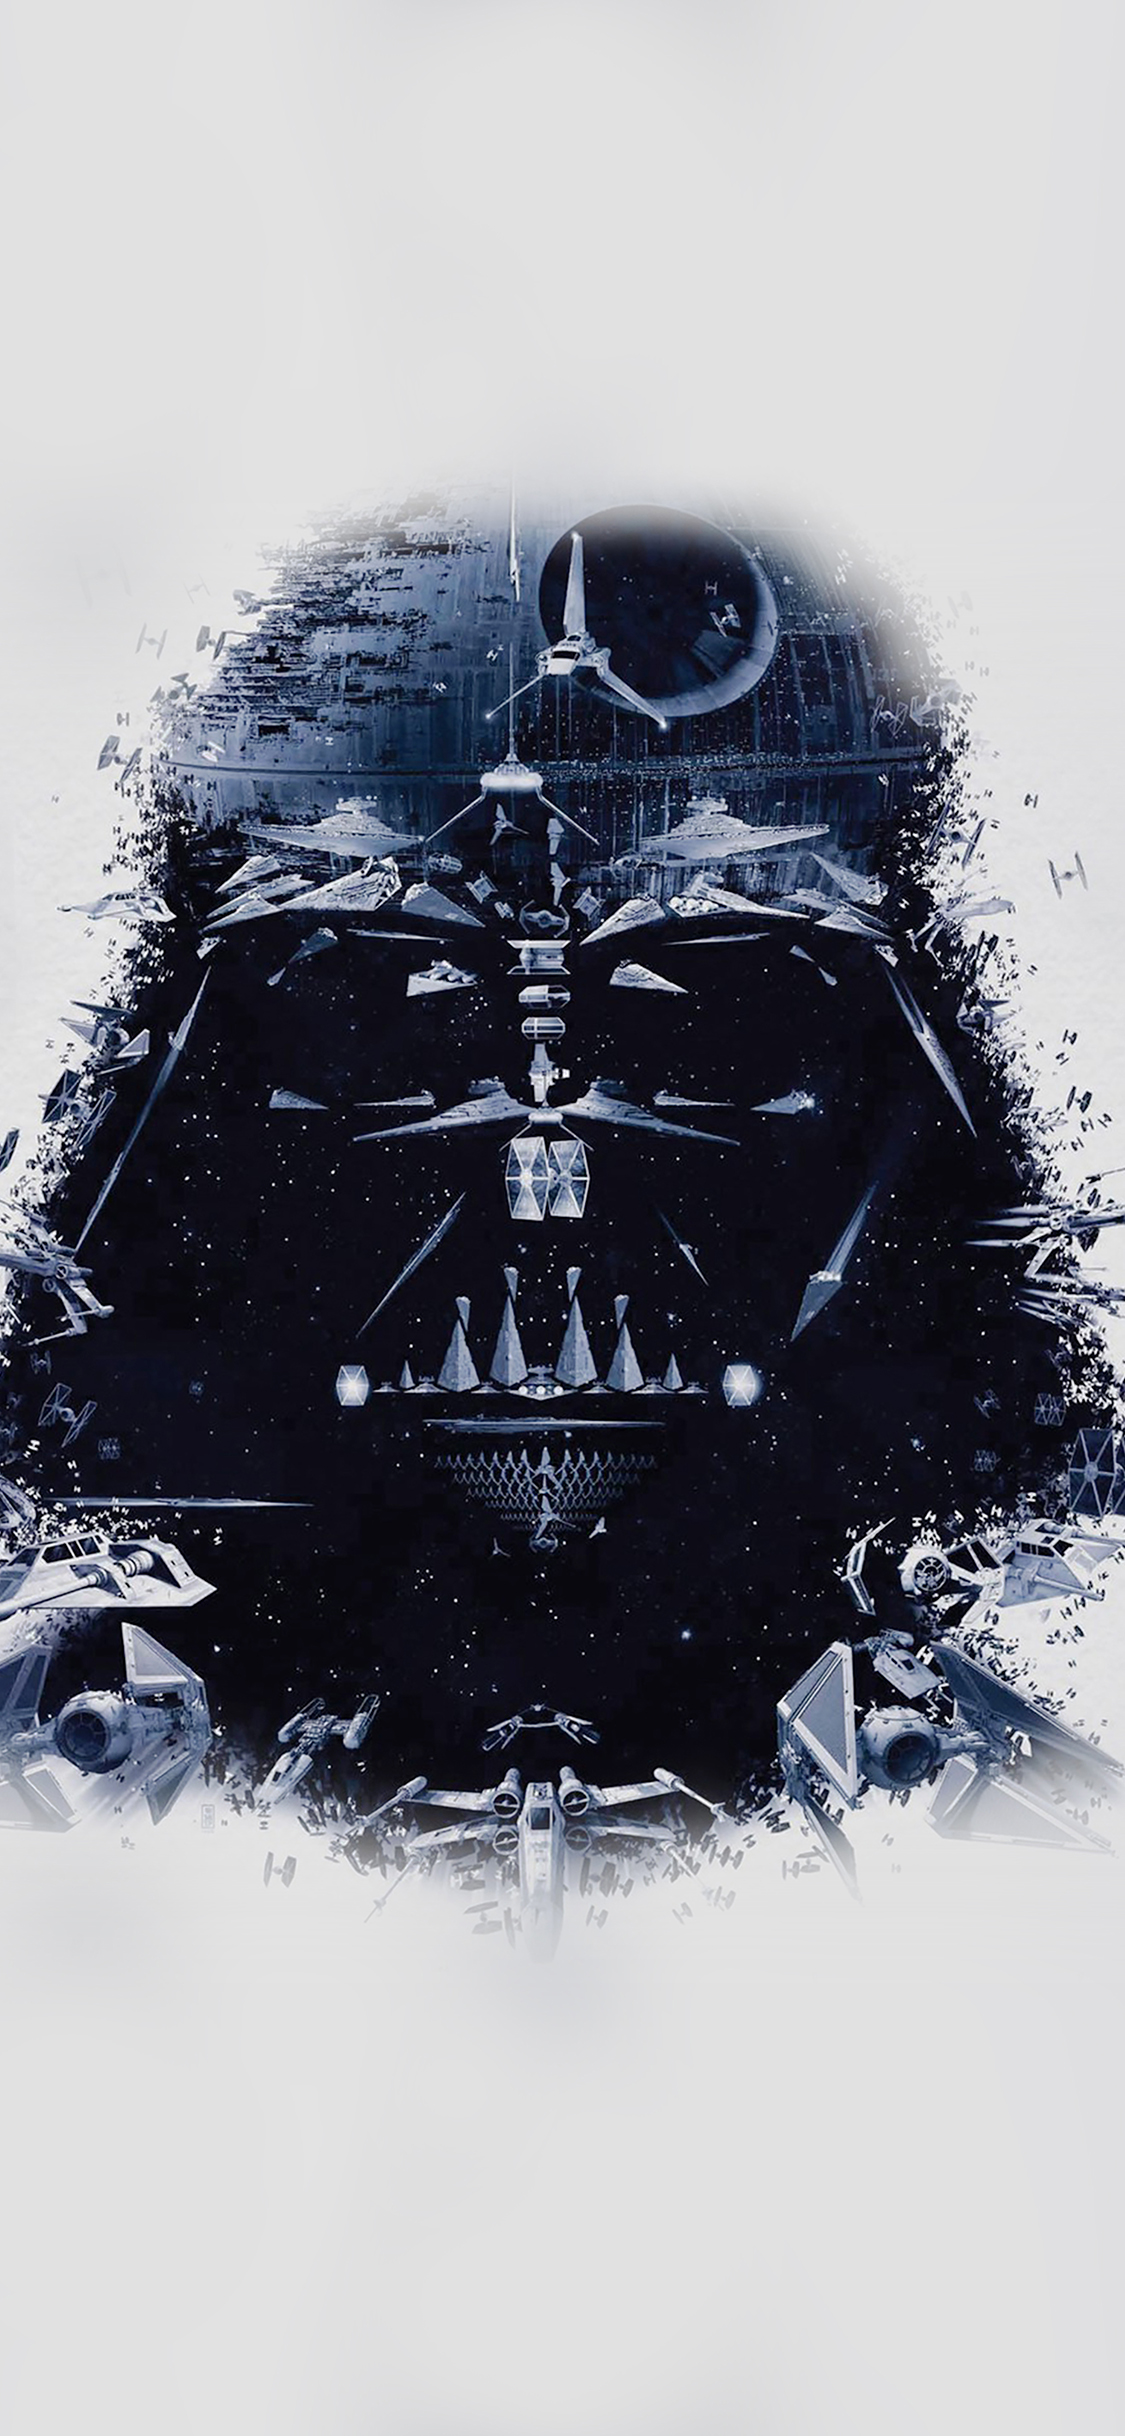 Ac33 Wallpaper Darth Vader Art Star Wars Illust Papers Co